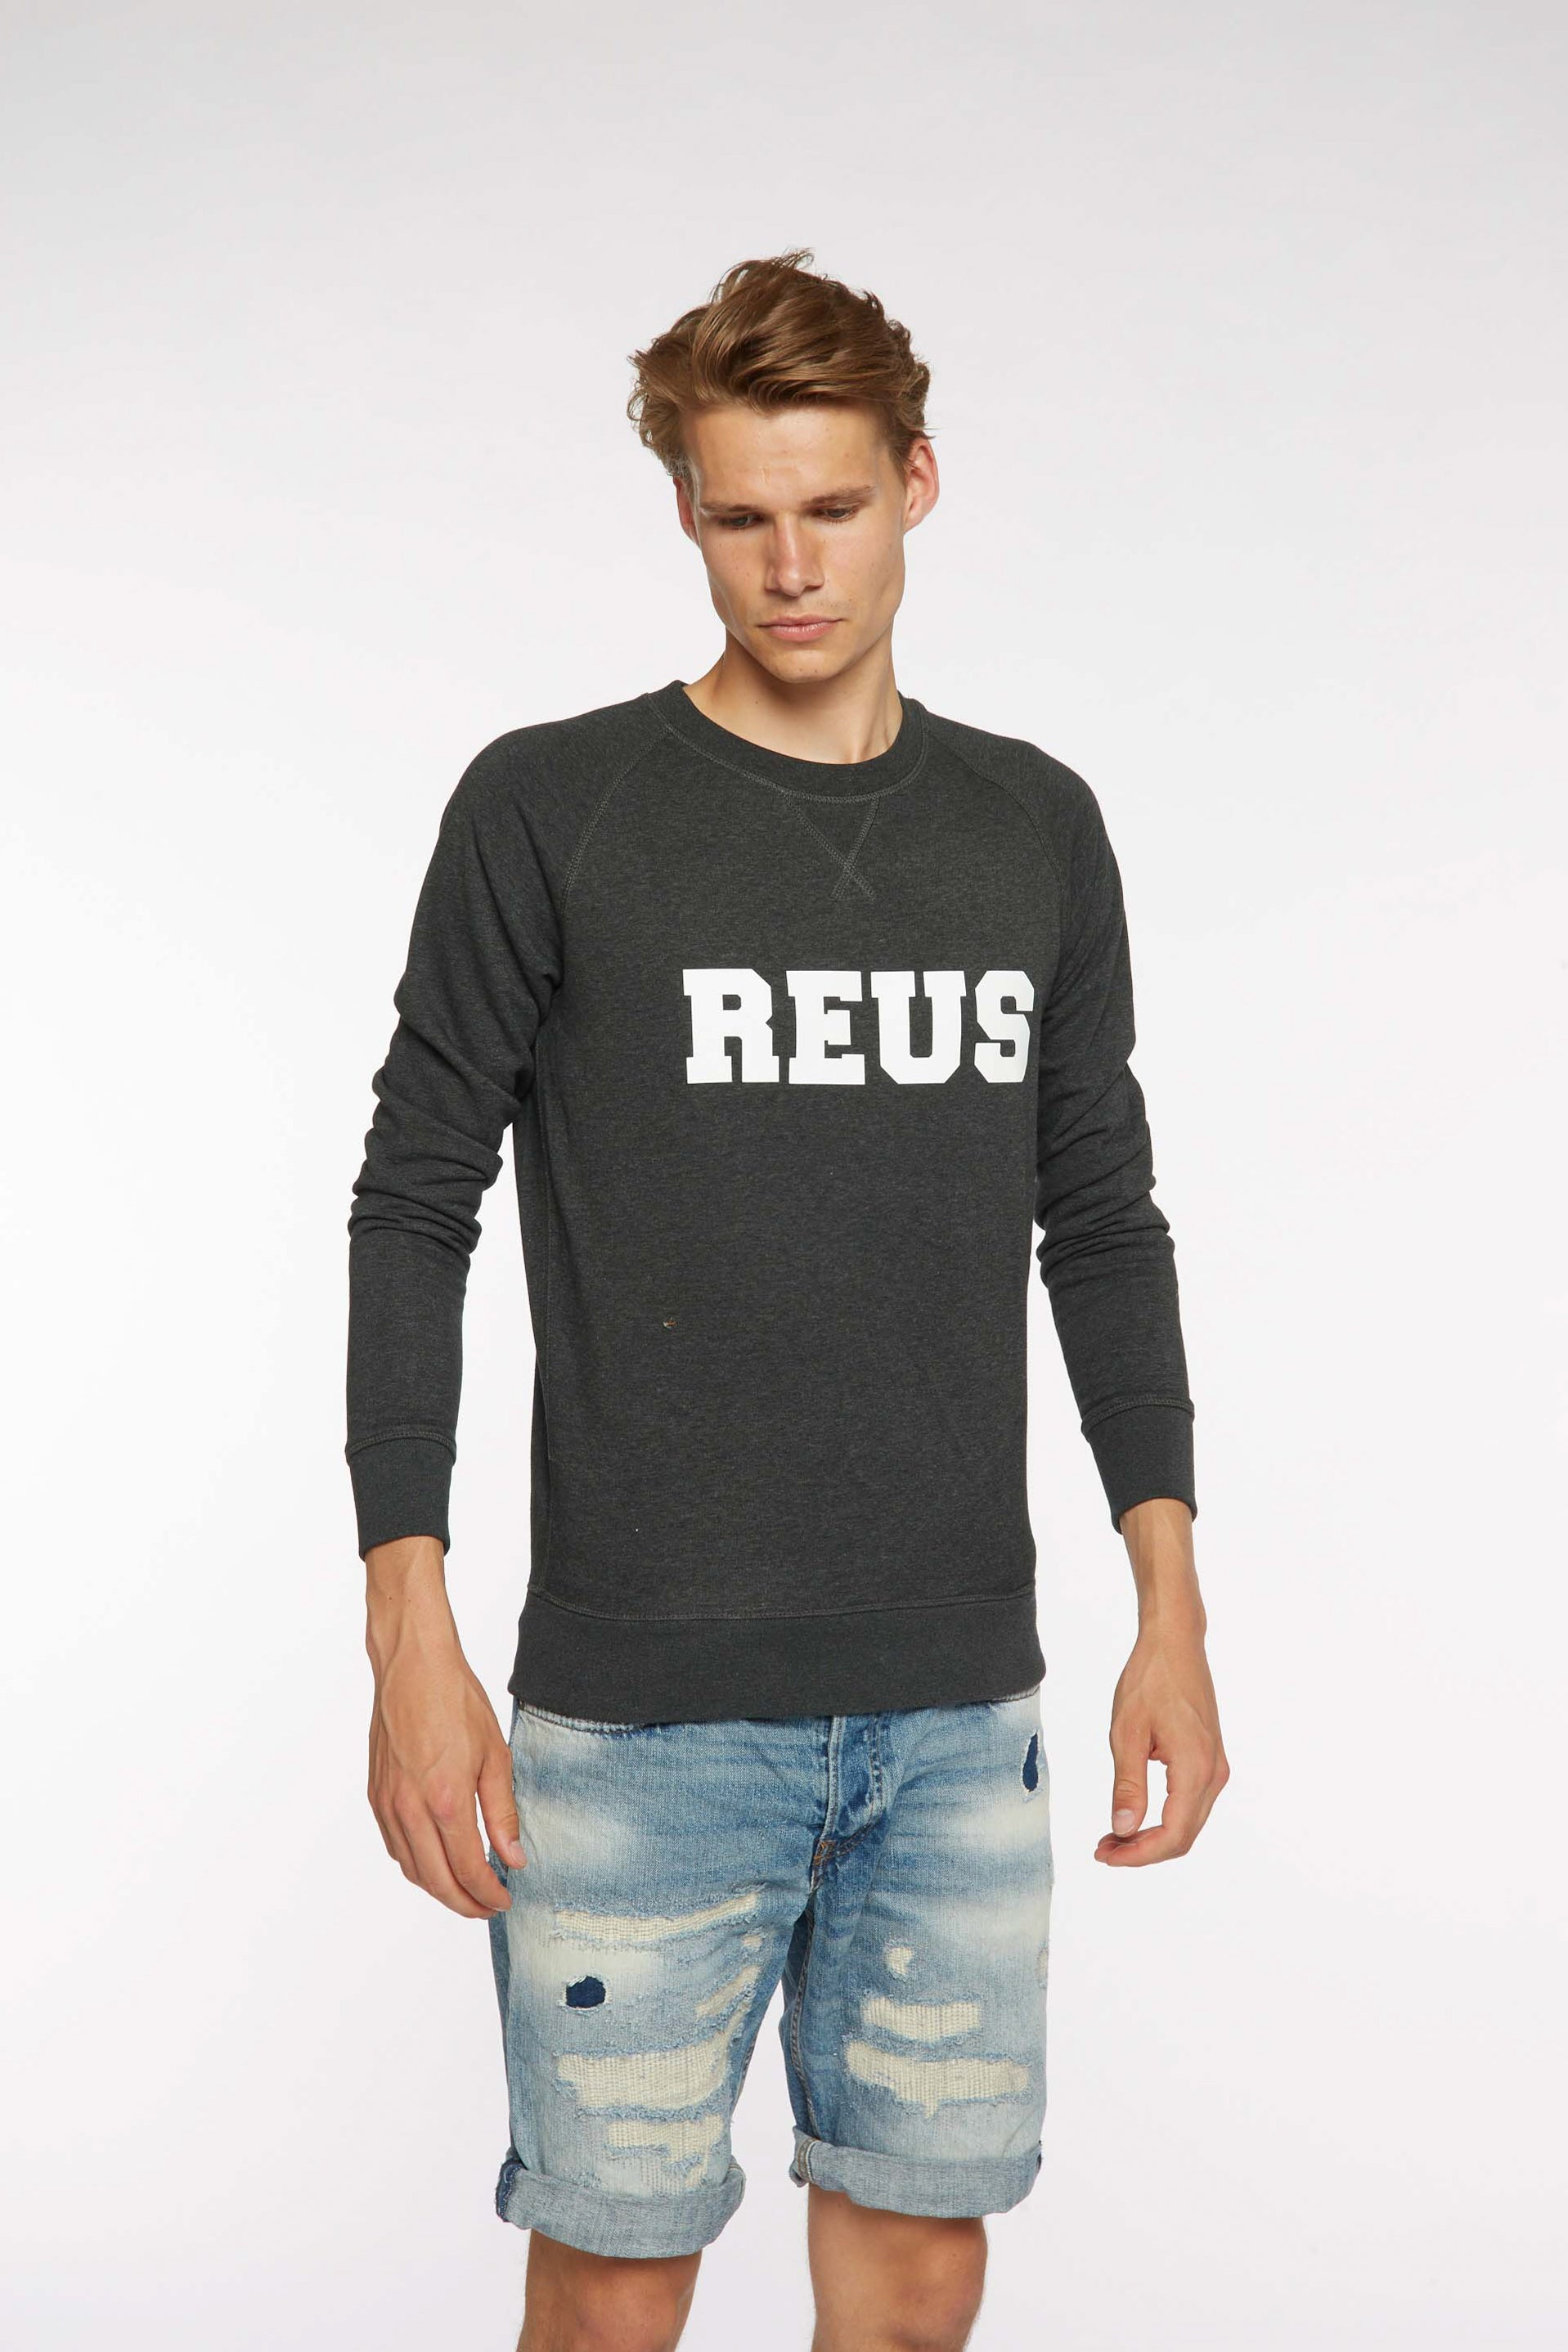 REUS  Sweater Mannen